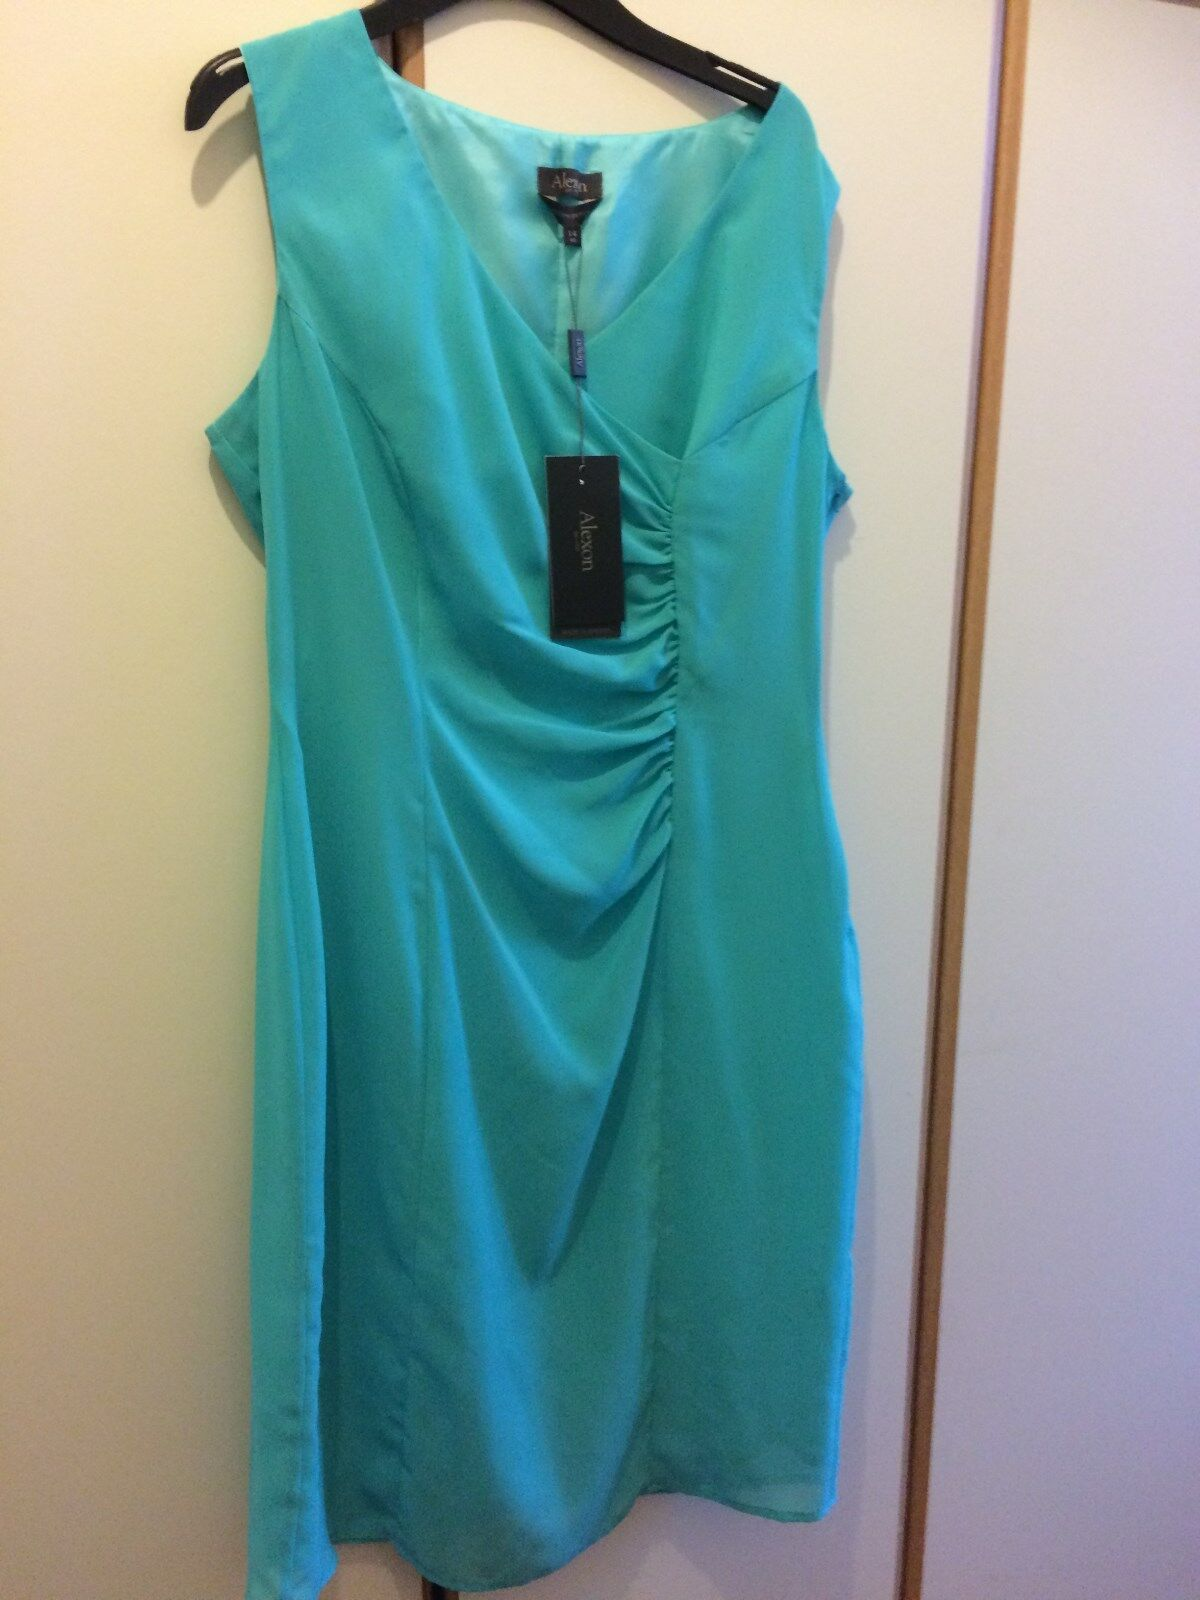 BNWT ALEXON AQUA  classic  FITTED DRESS, SIZE 14 perfect for Special Occasions.